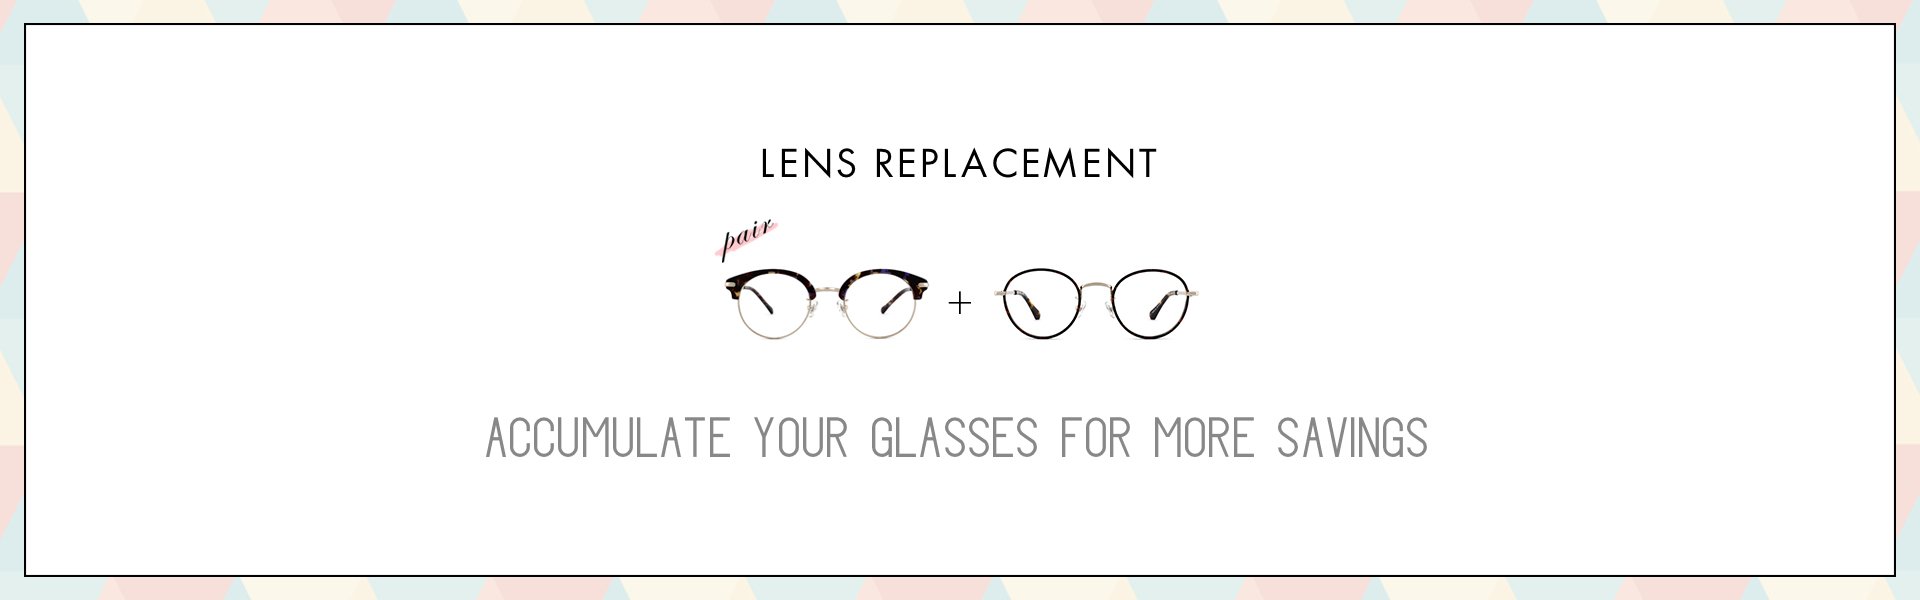 Accumulate Your Glasses For More Savings